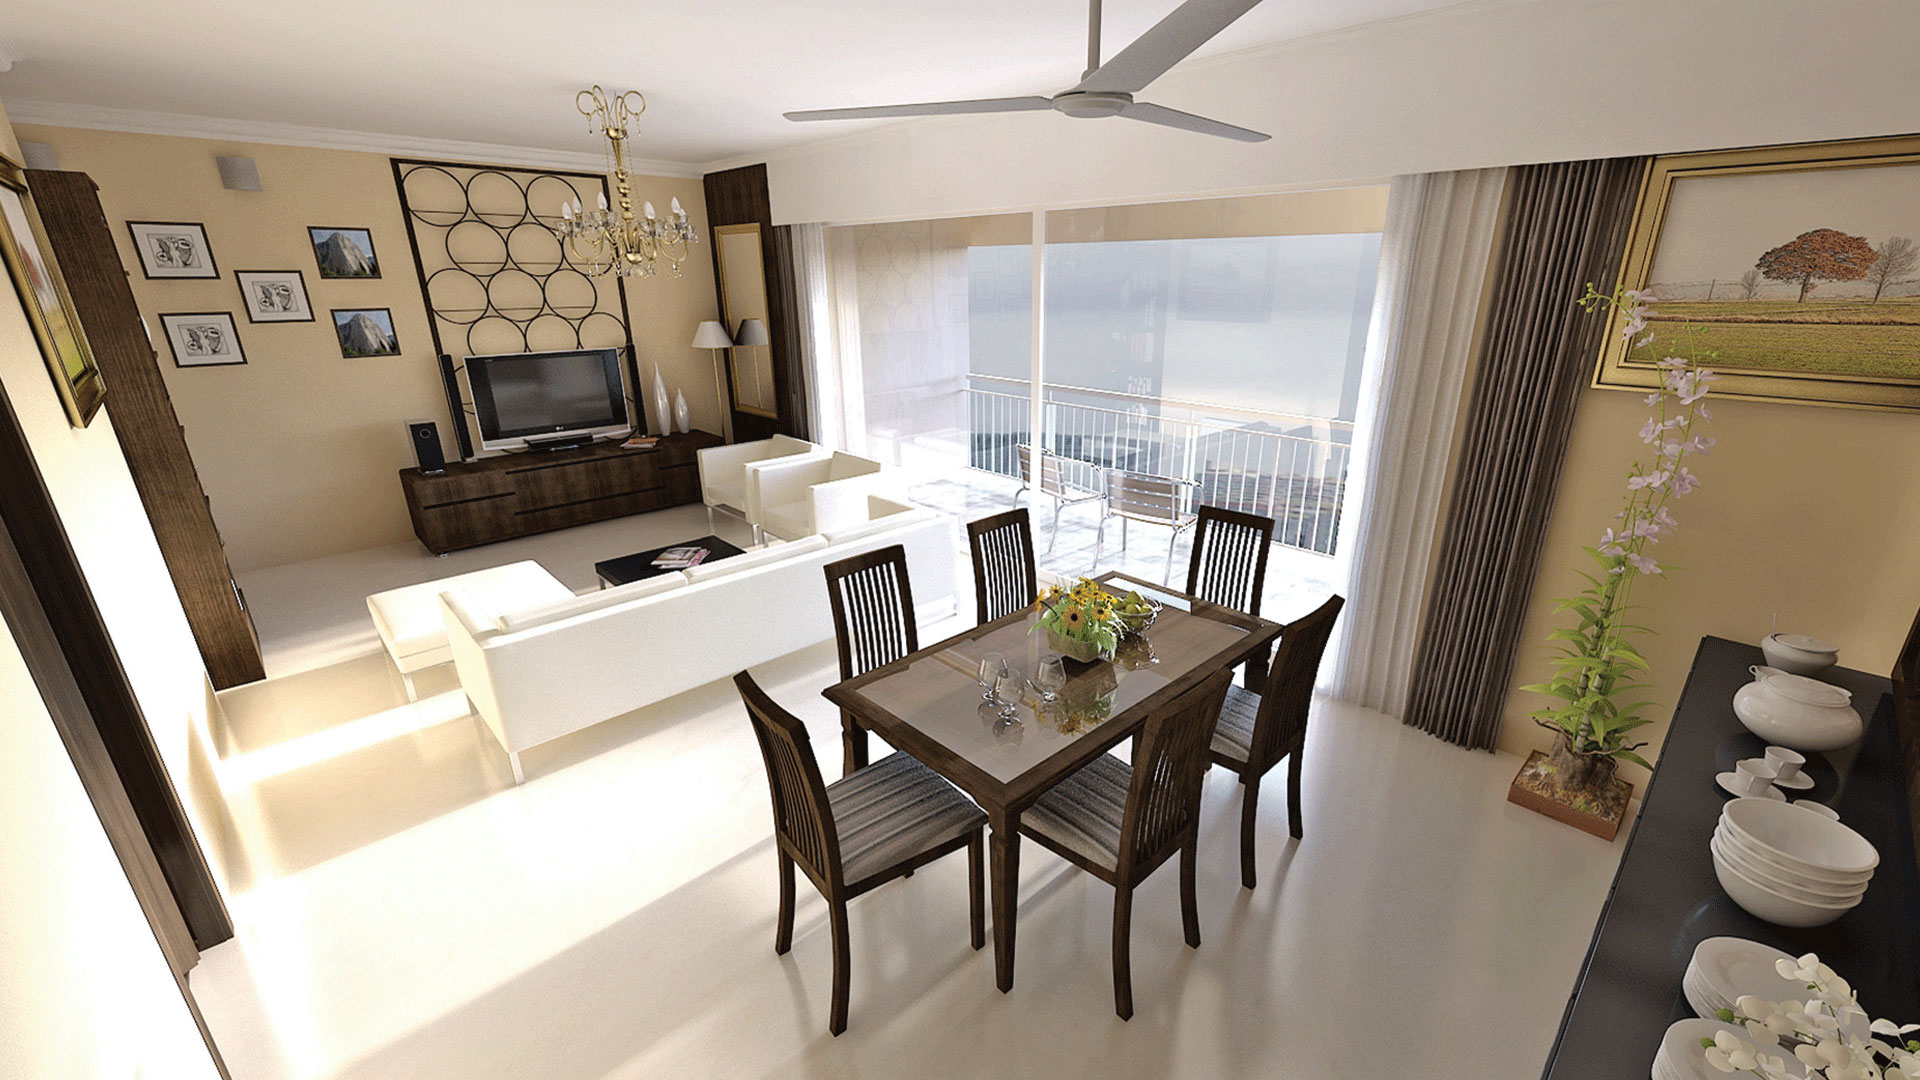 prestige-woodland-park-in-cooke-town-Bangalore-image-02